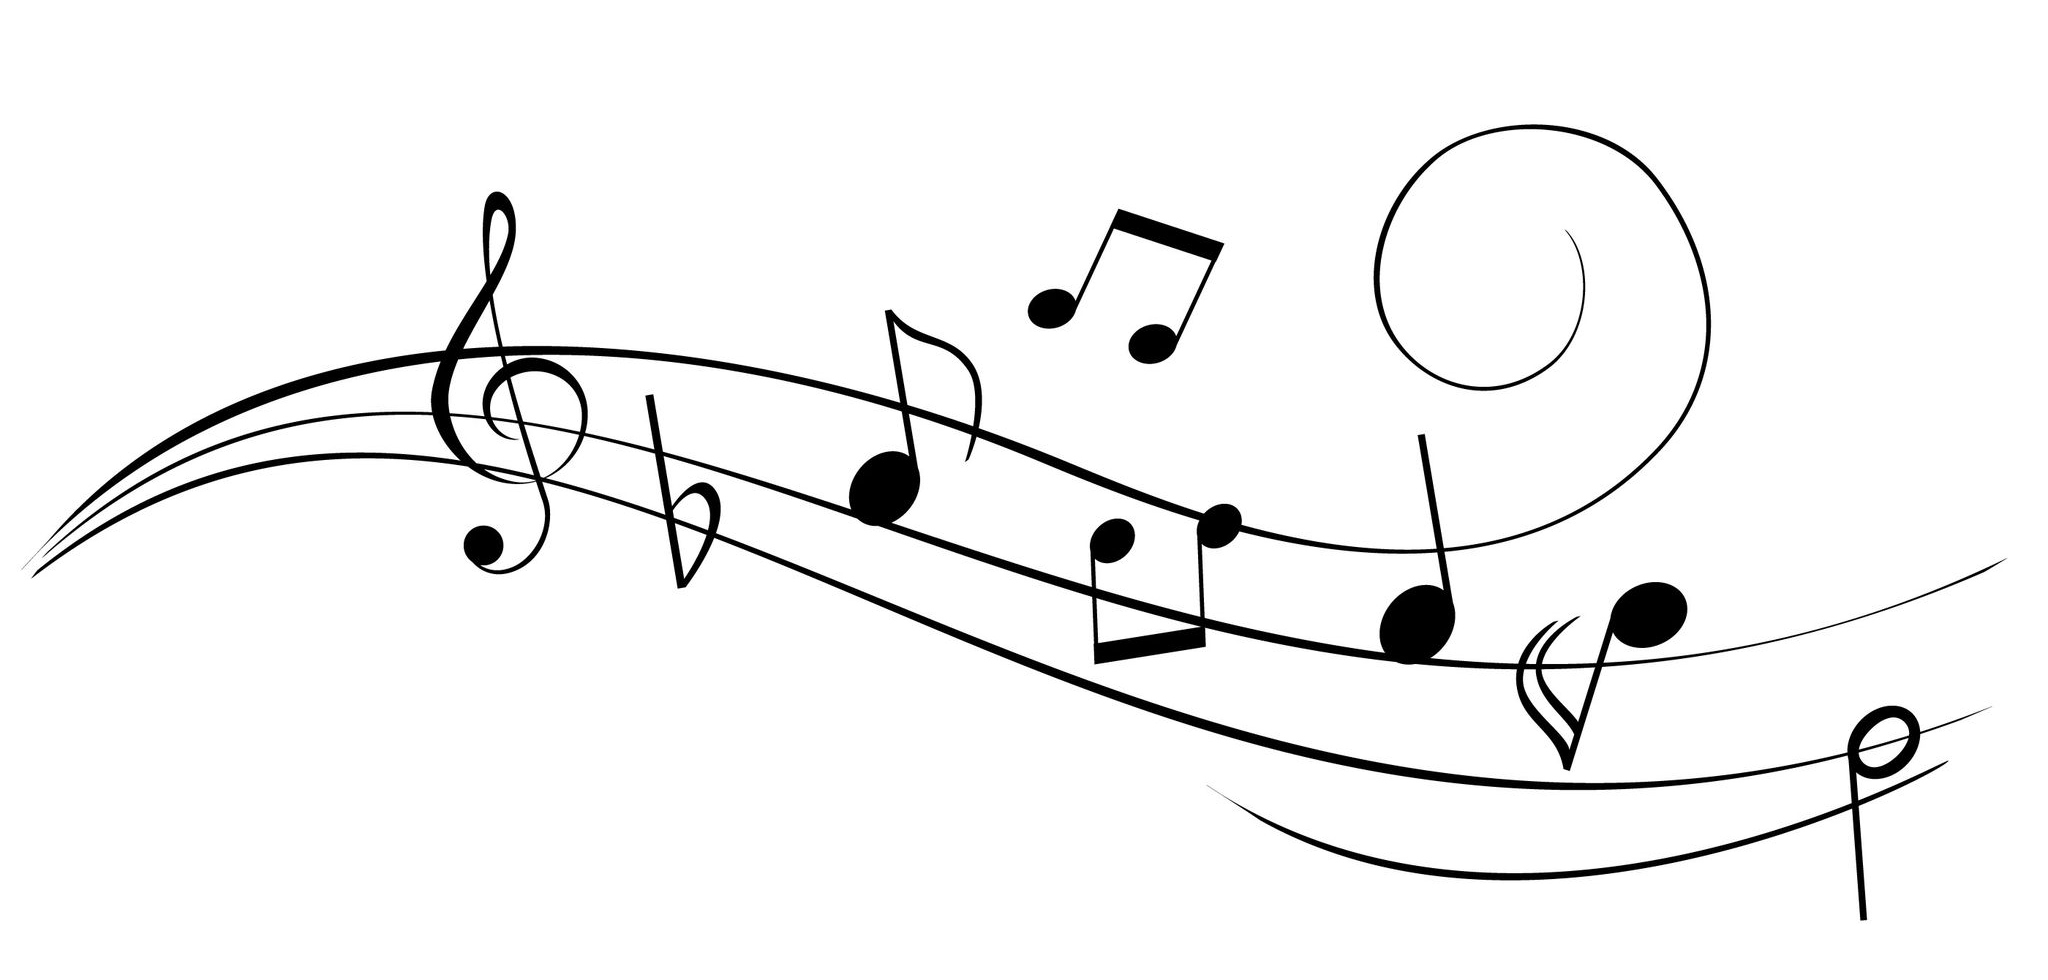 Png Hd Music Notes Transparent Hd Music Notes Png Images Pluspng